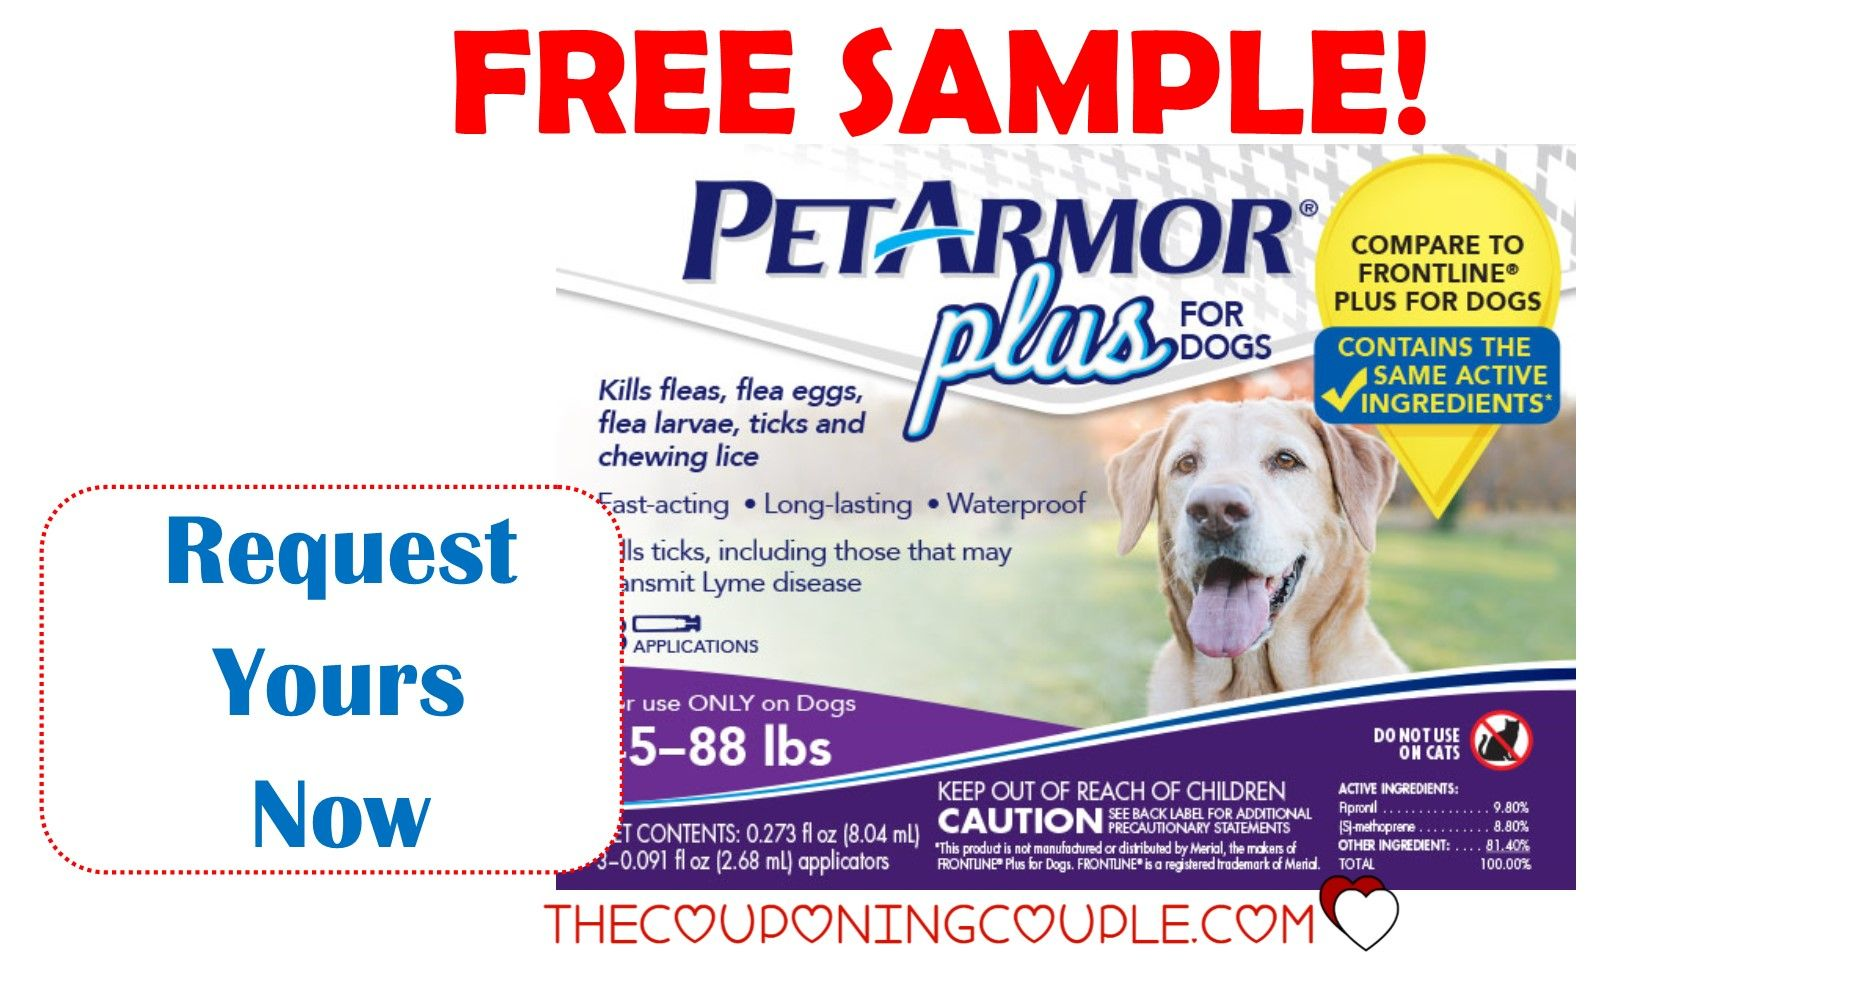 FREE SAMPLE! Pet Armor Plus for Dogs or Cats! Dogs, Pets